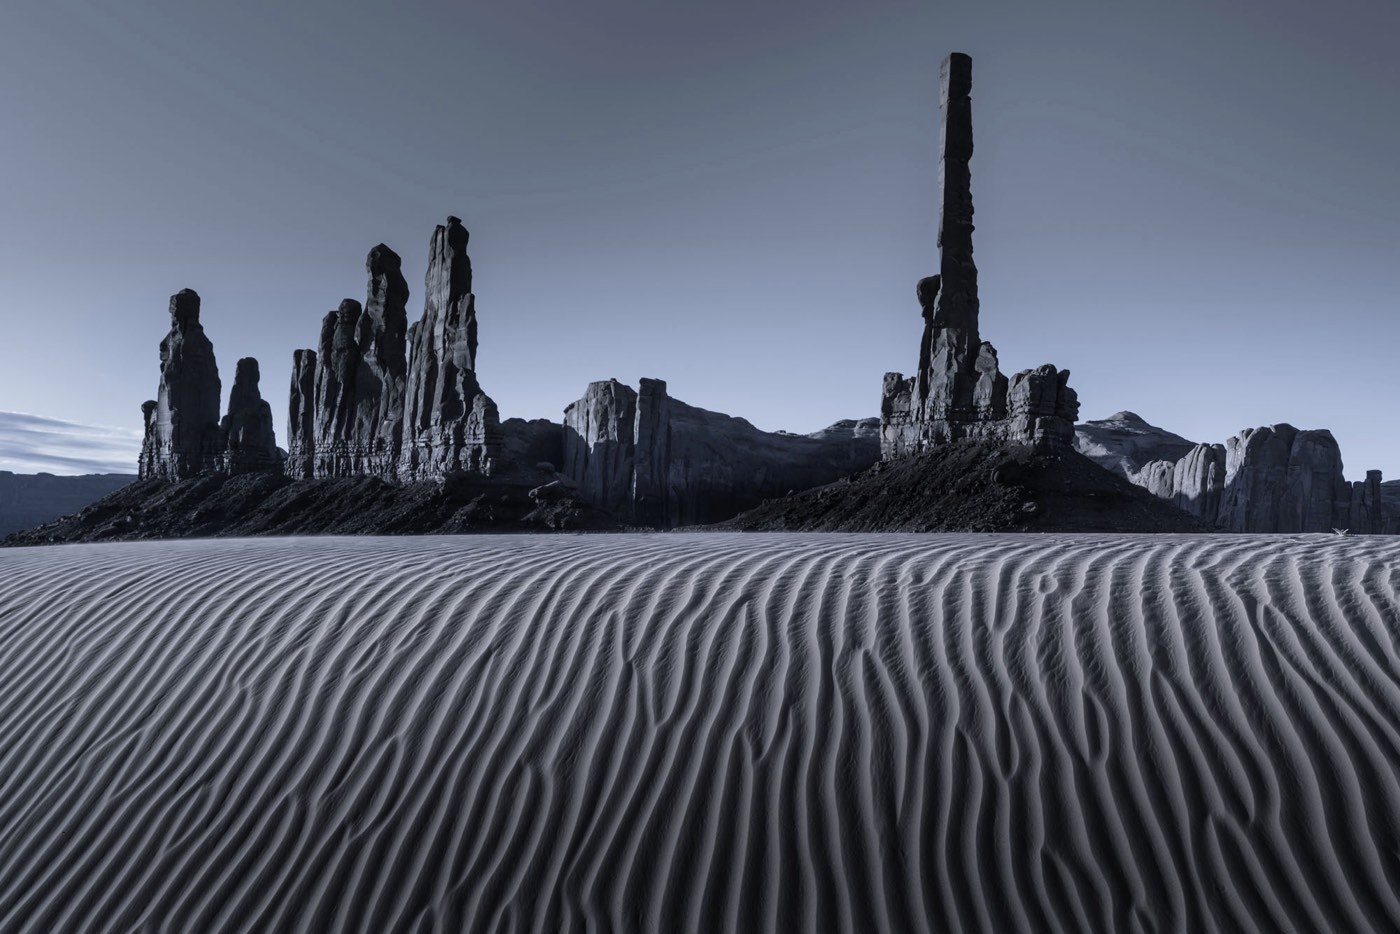 Sony Photo Awards 2017